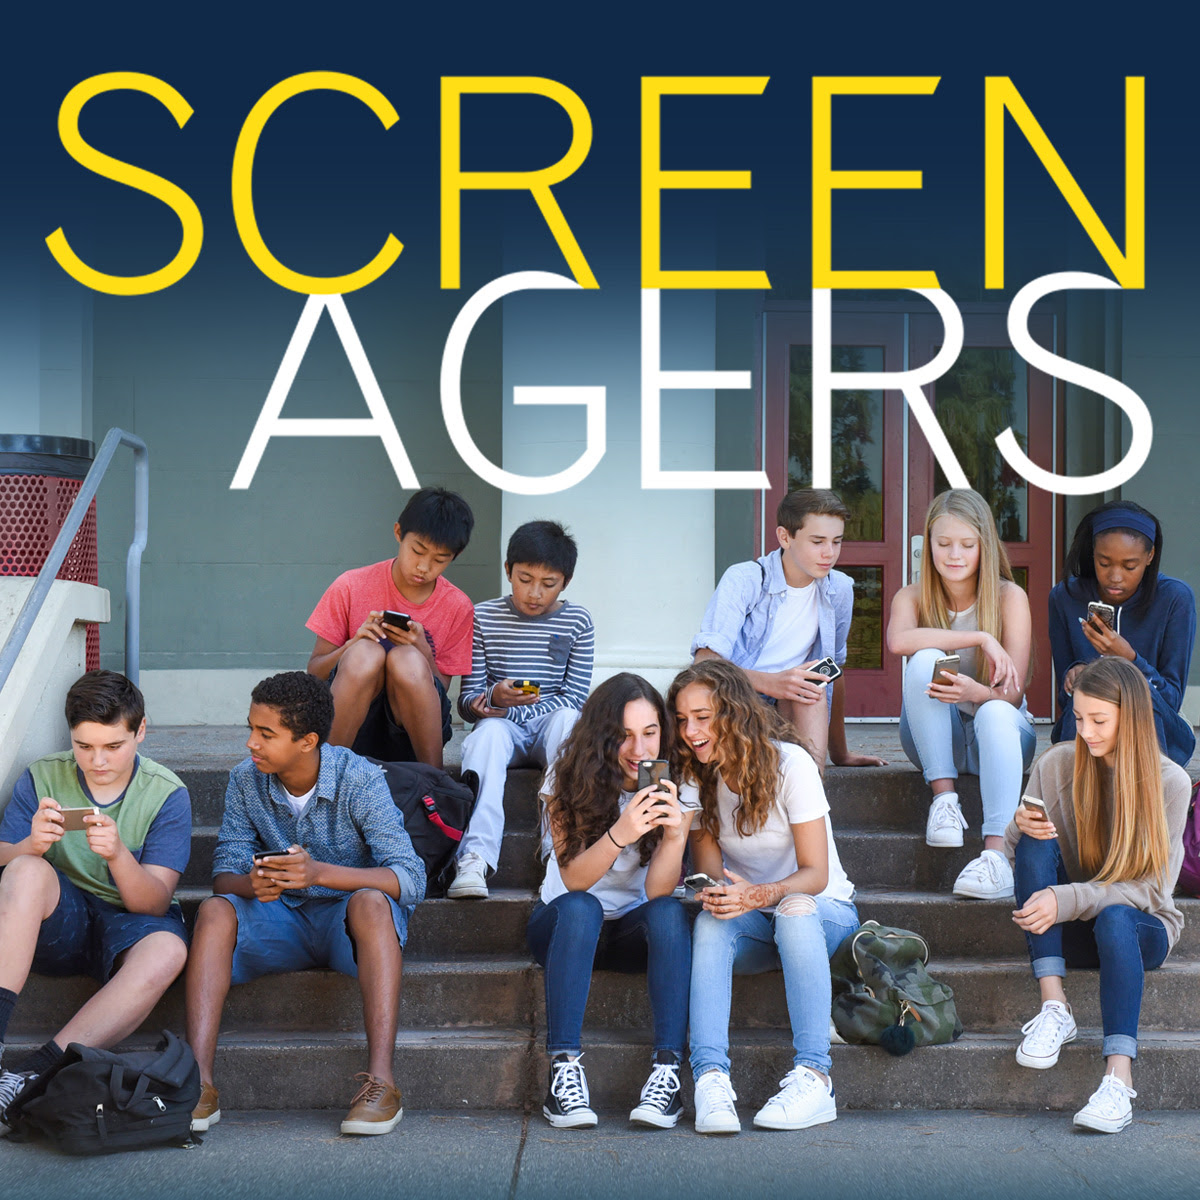 Screenagers Film Presented By East Aurora PTO